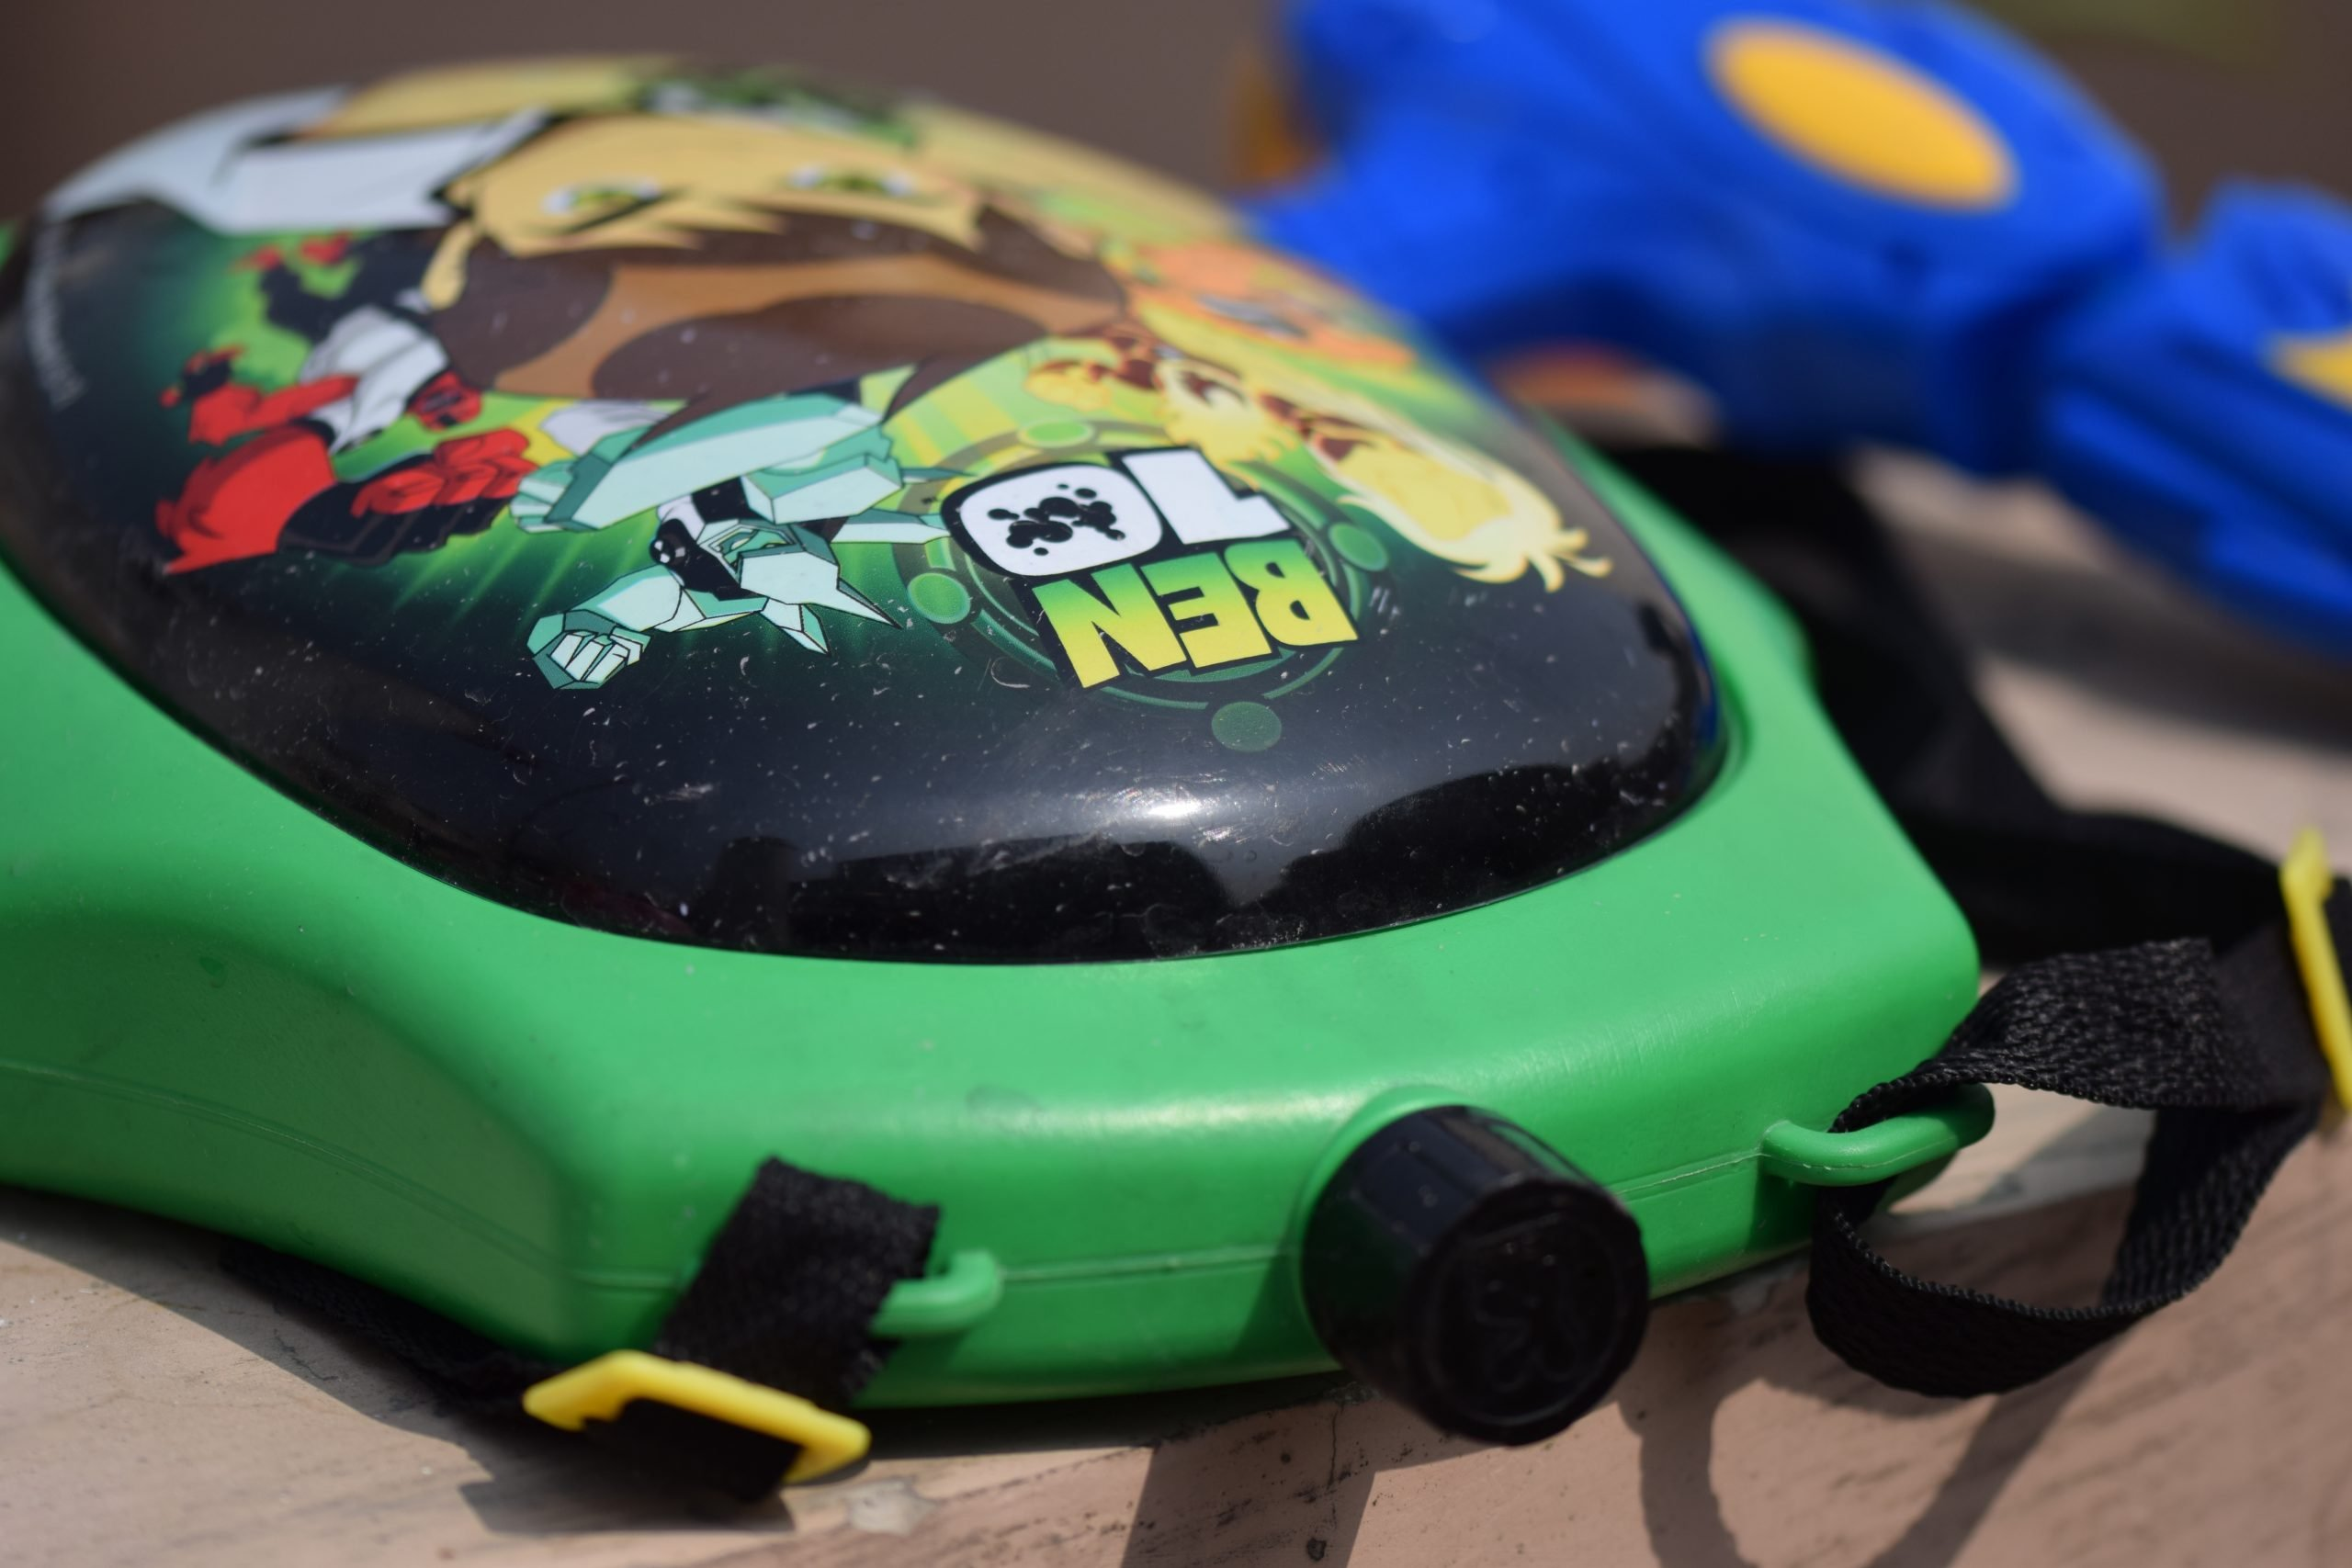 A Ben 10 water gun bottle.